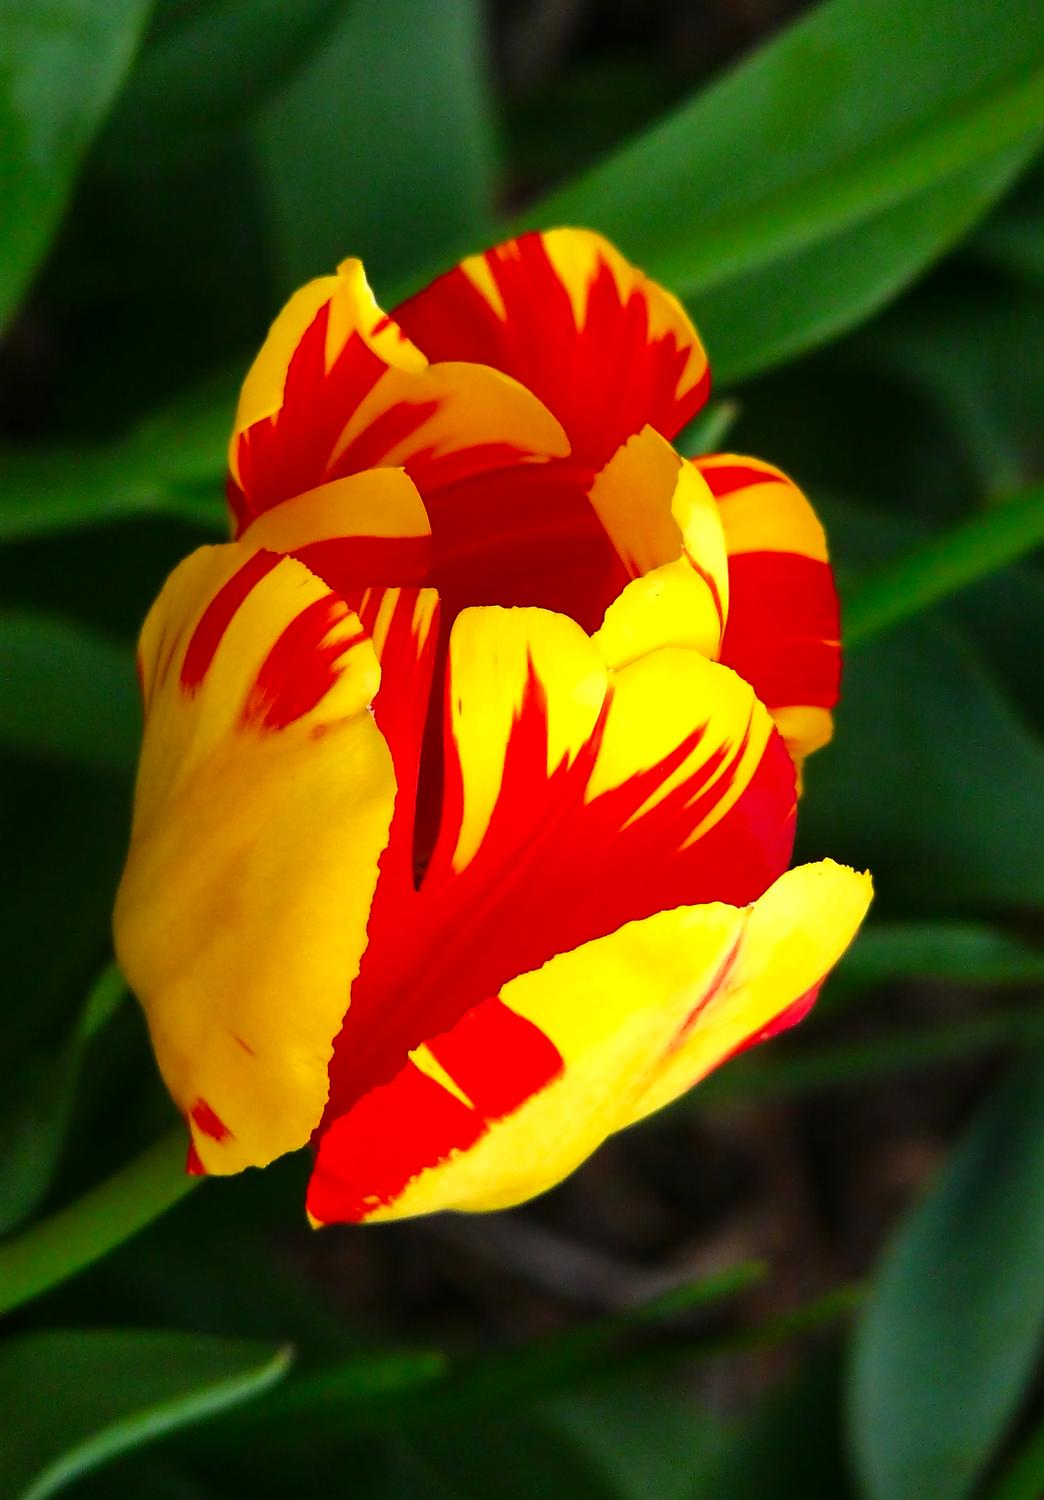 Tulip grown by The Artist's Muse - #10 - Tulip #10 - - art  - photography - by Tony Karp